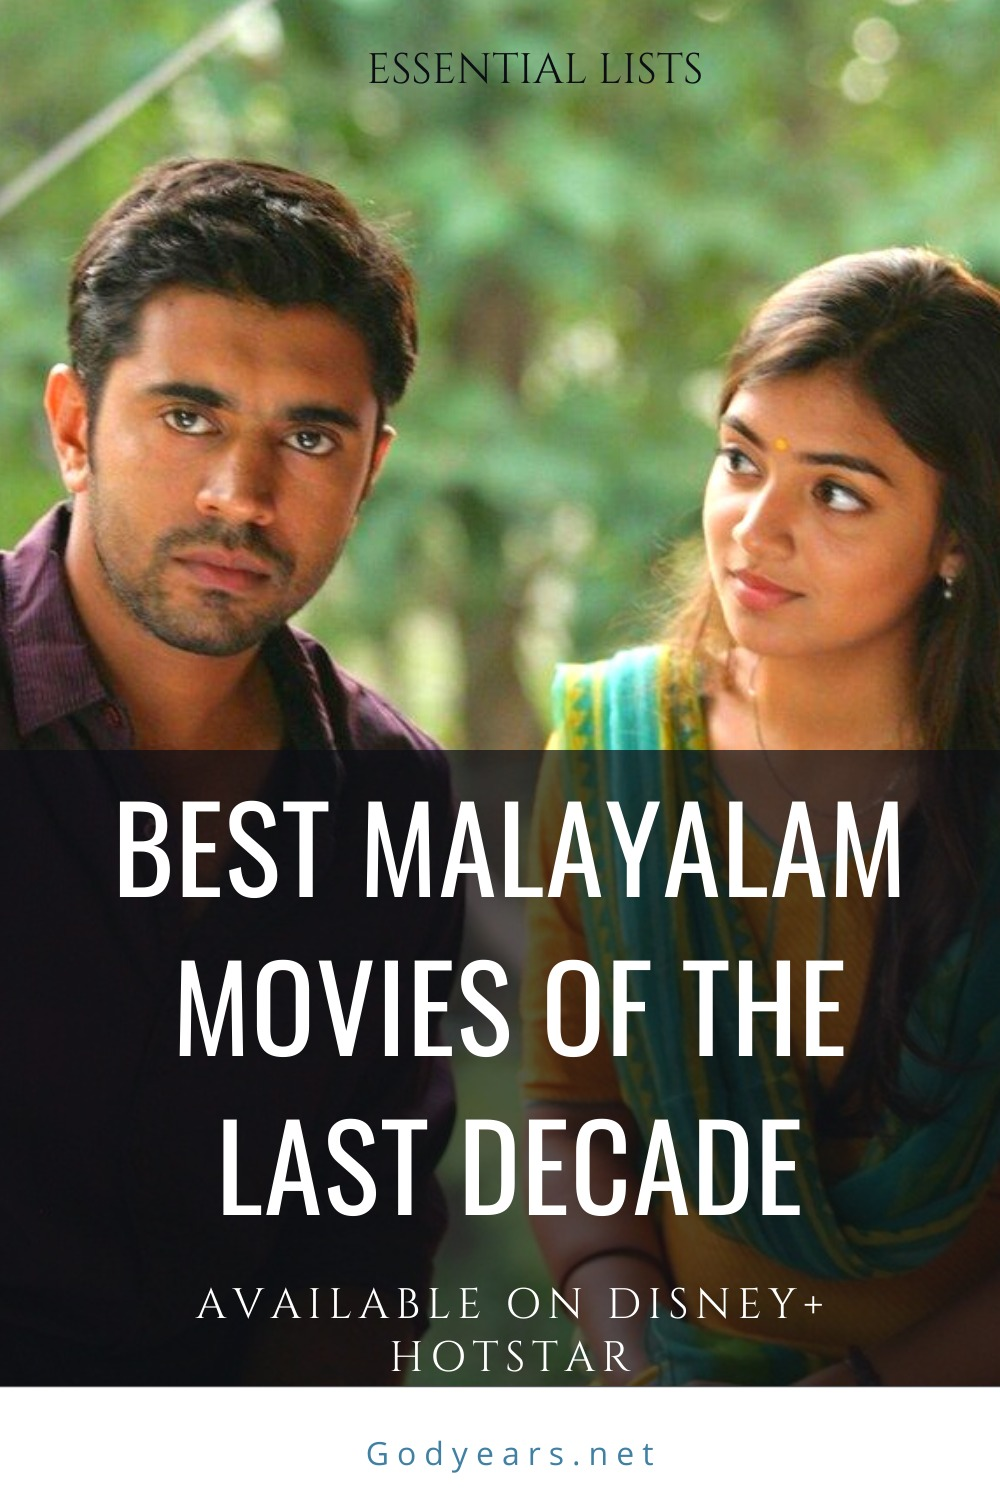 List of the Best Malayalam Movies of the Last Decade Available on Disney Hotstar